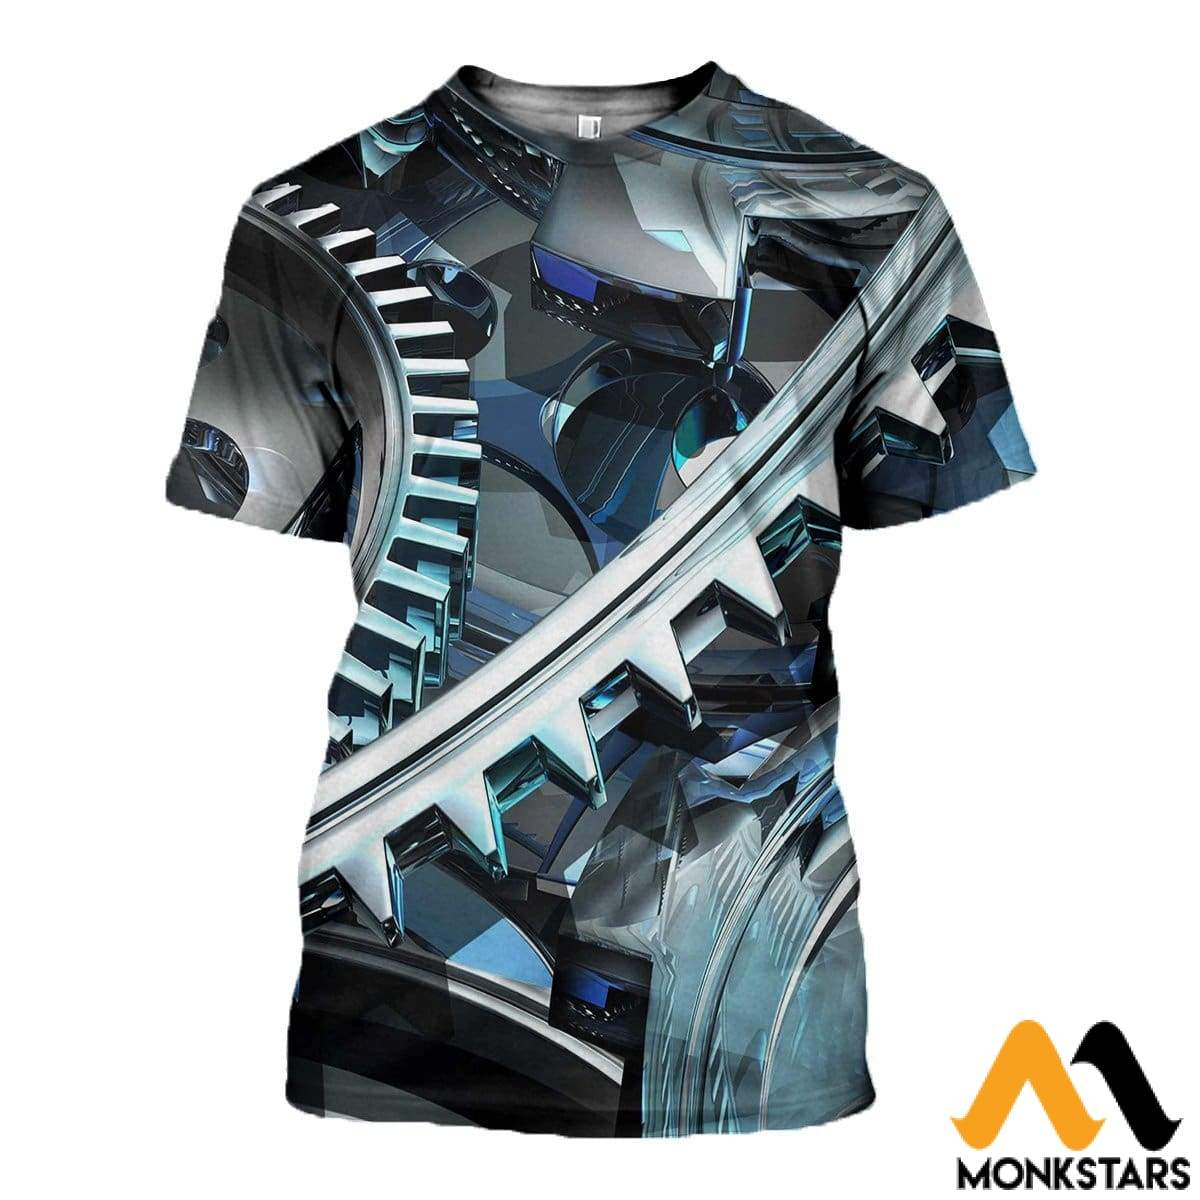 3D Printed Gear Clothes T-Shirt / Xs